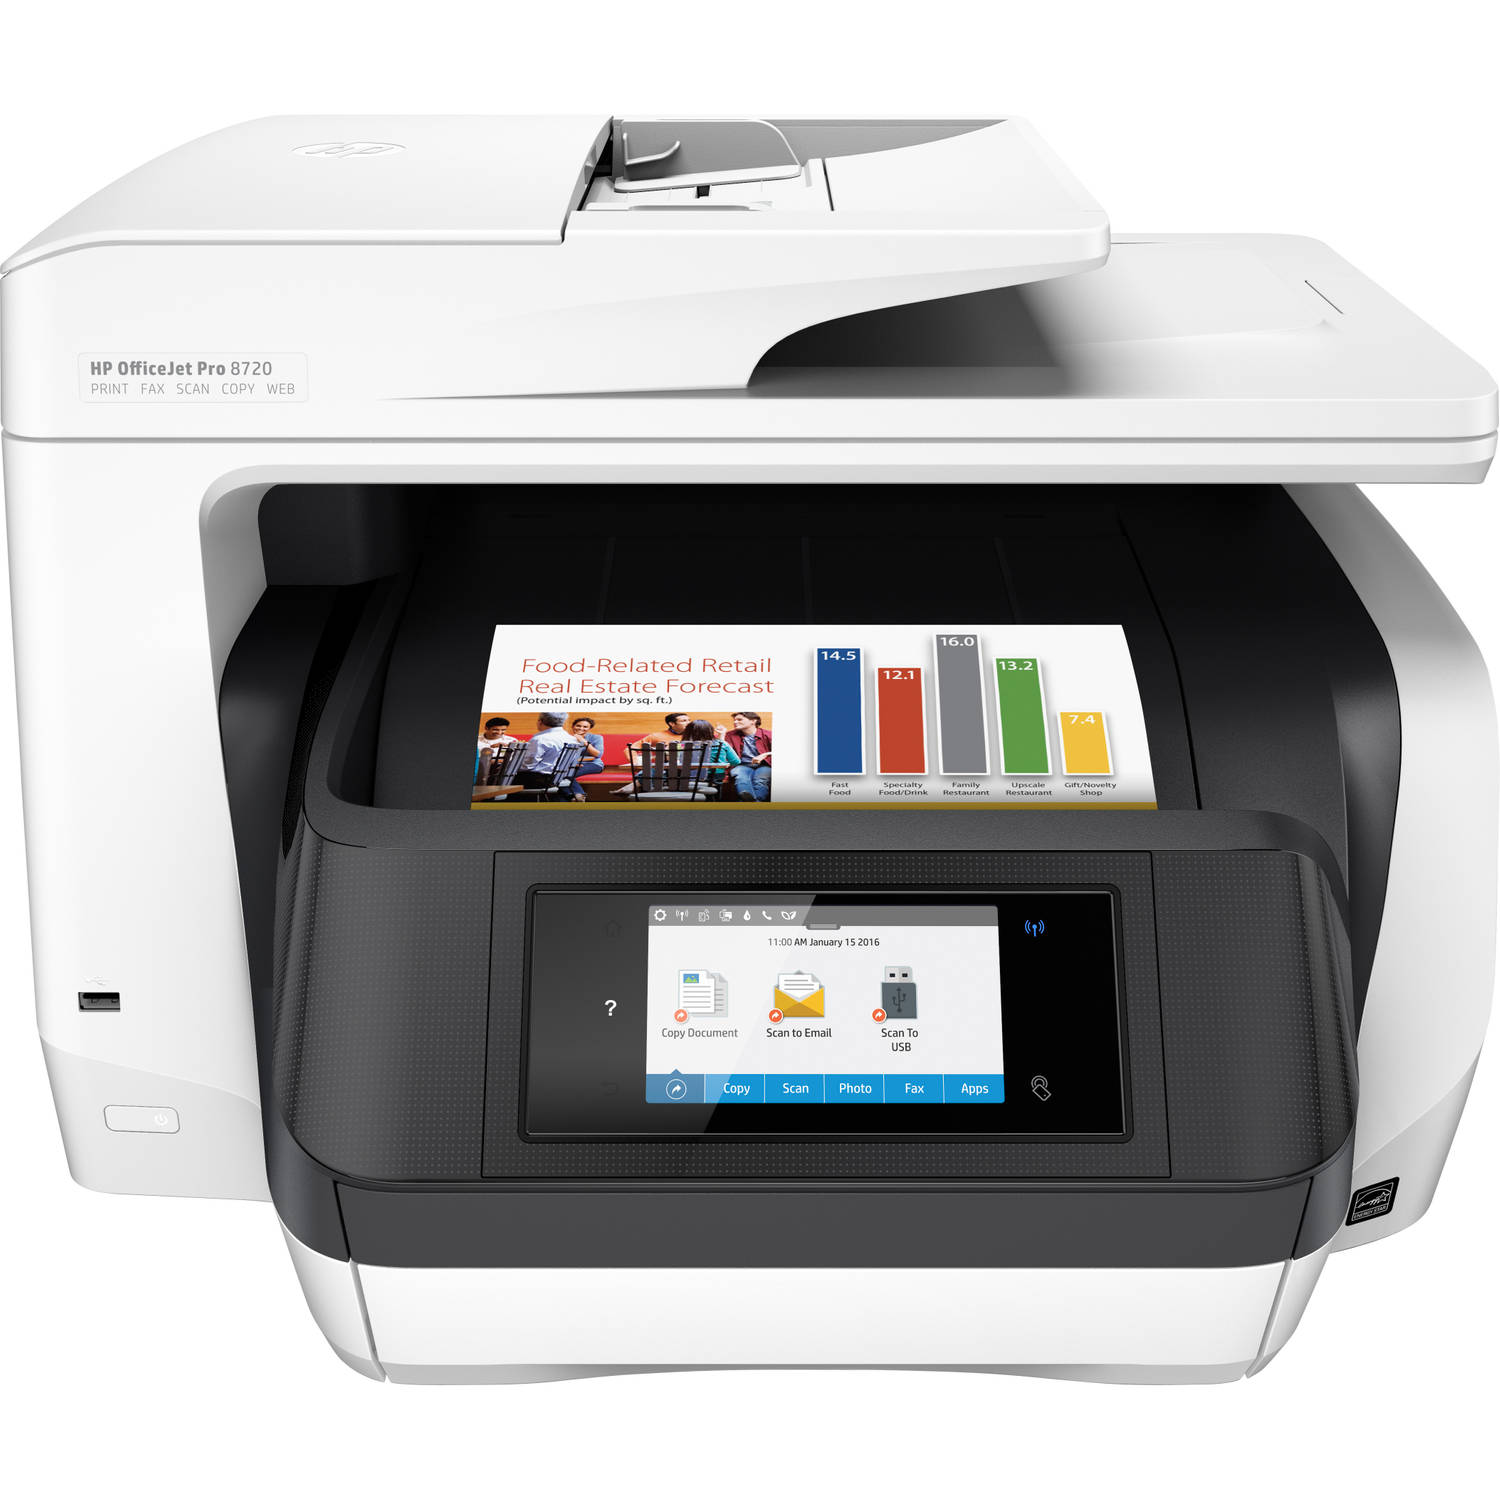 OfficeJet Pro 8720 All-in-one (D9L19A)